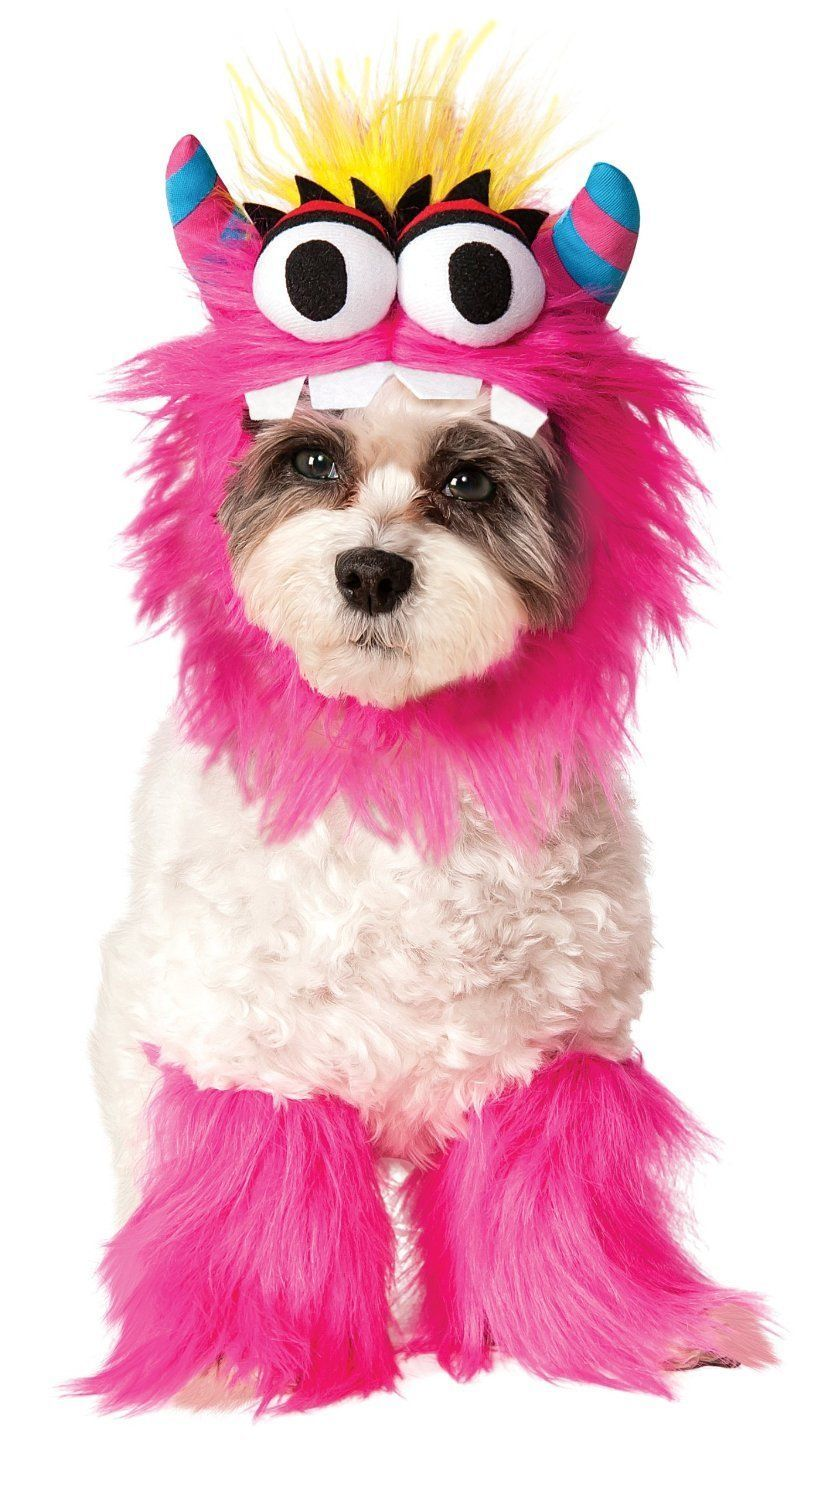 Adorable Pet Dog Costume: Blue Monster 580179 or Pink Monster 580180, Rubies - B